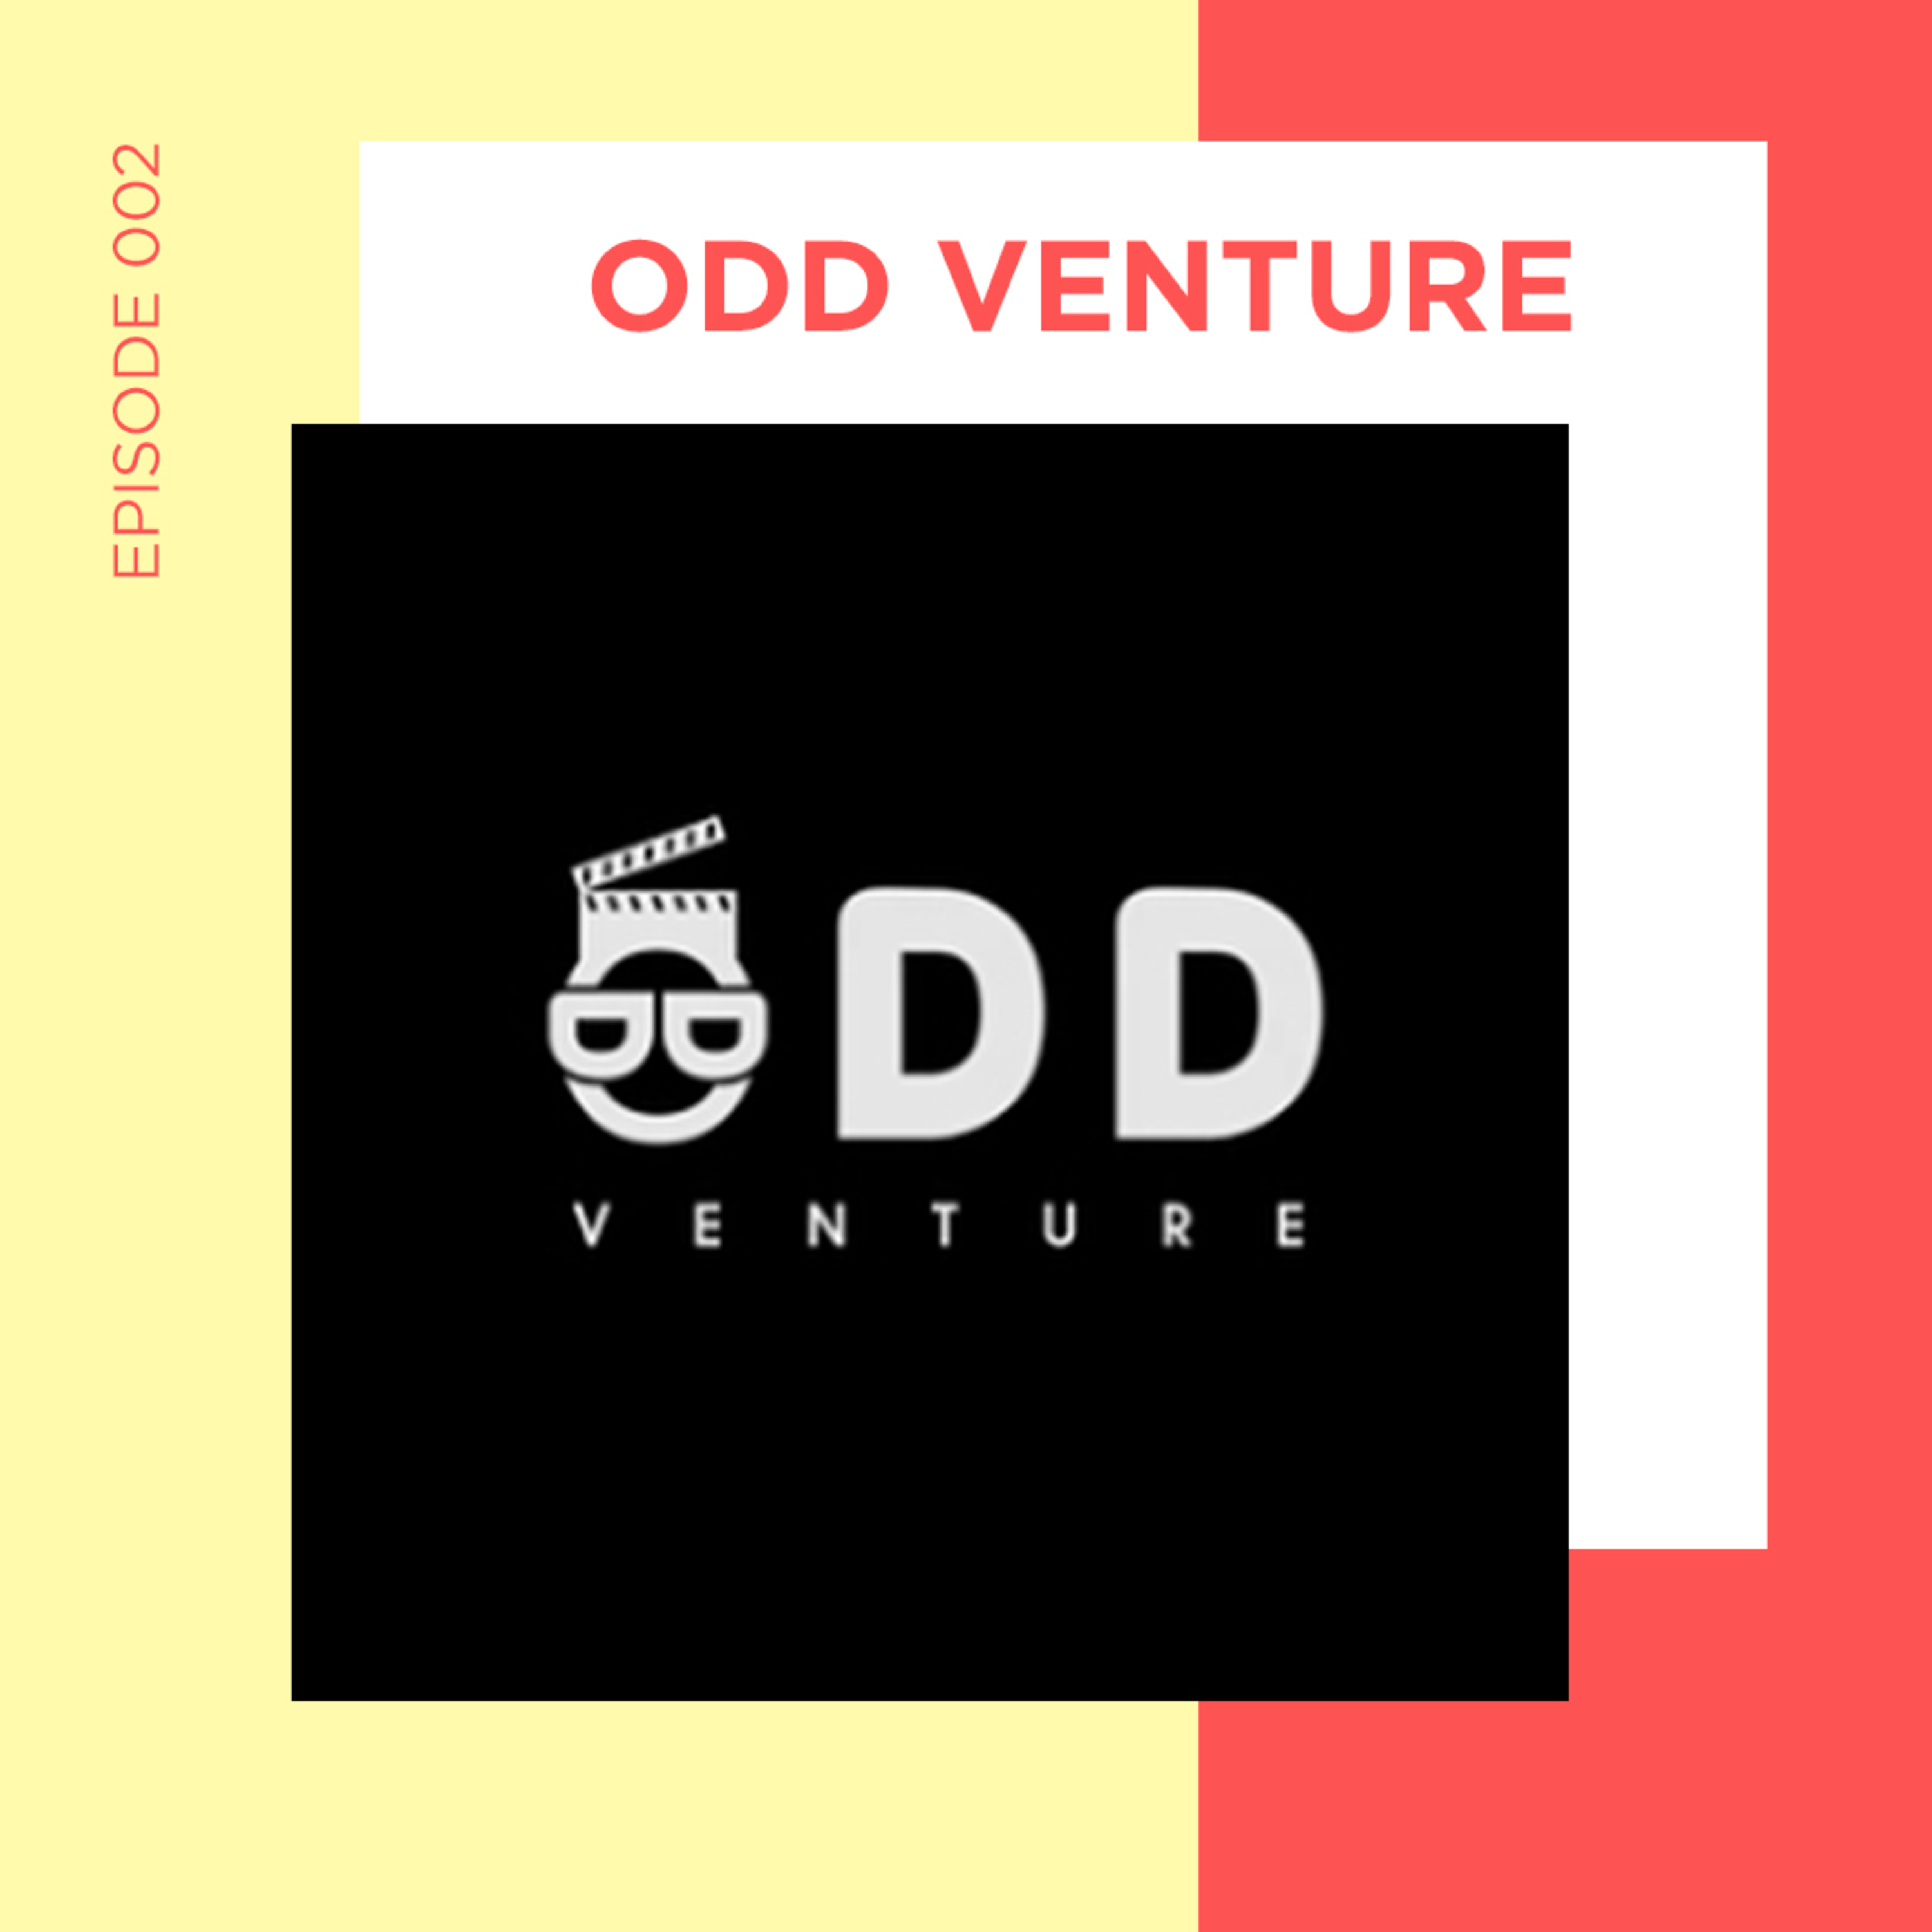 EP 2 - Who is Odd Venture?